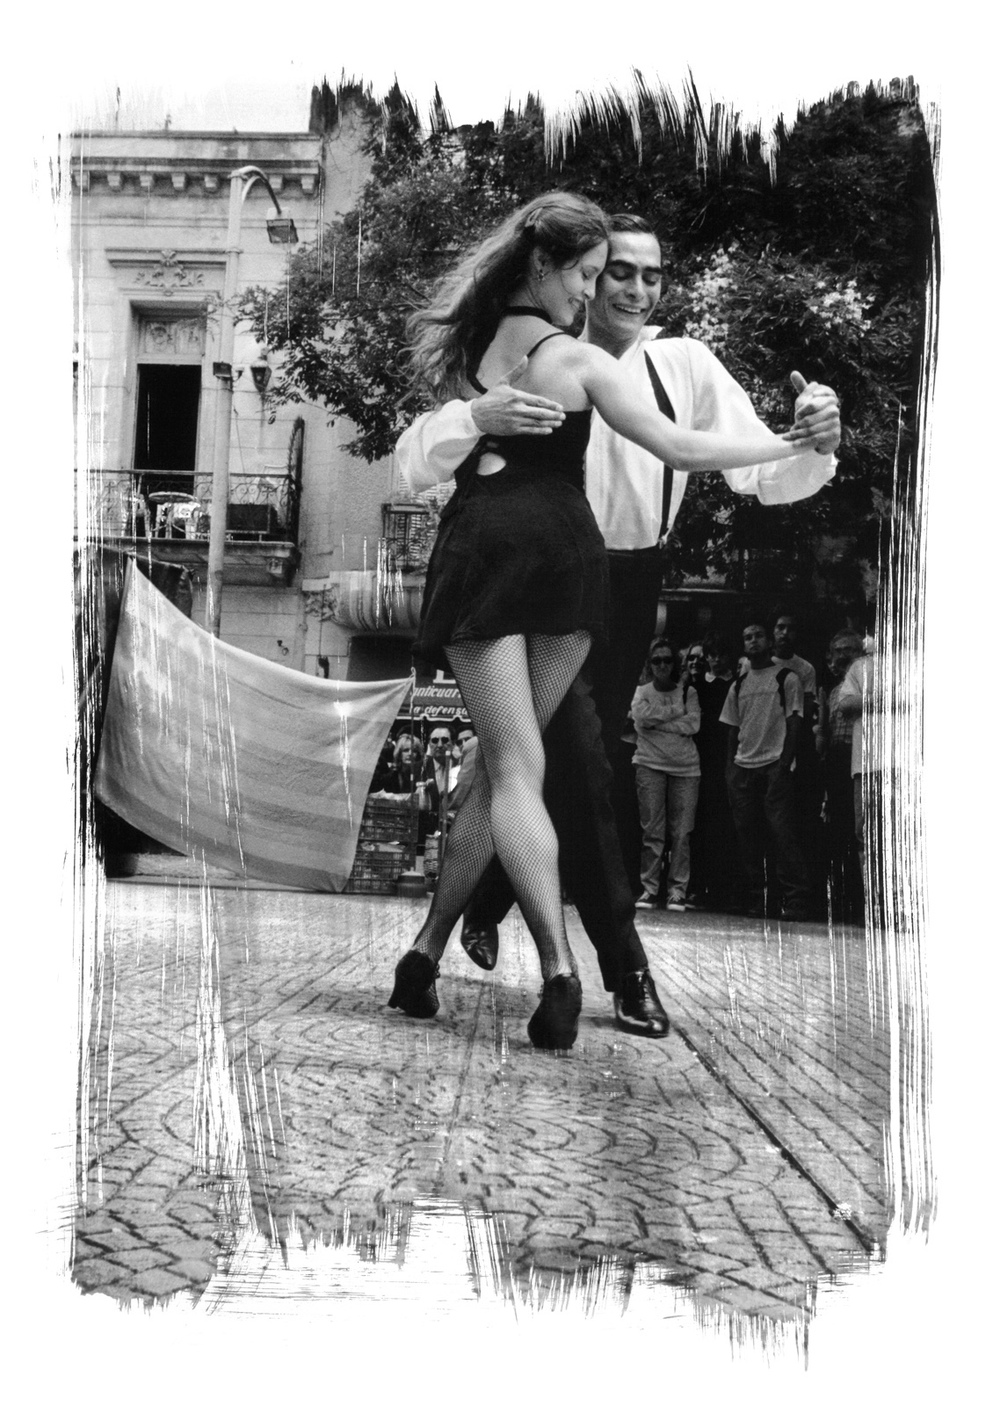 Paul Ickovic  , Tango Dancers   View more of the artist's photographs   here .    www.paulickovic.photography